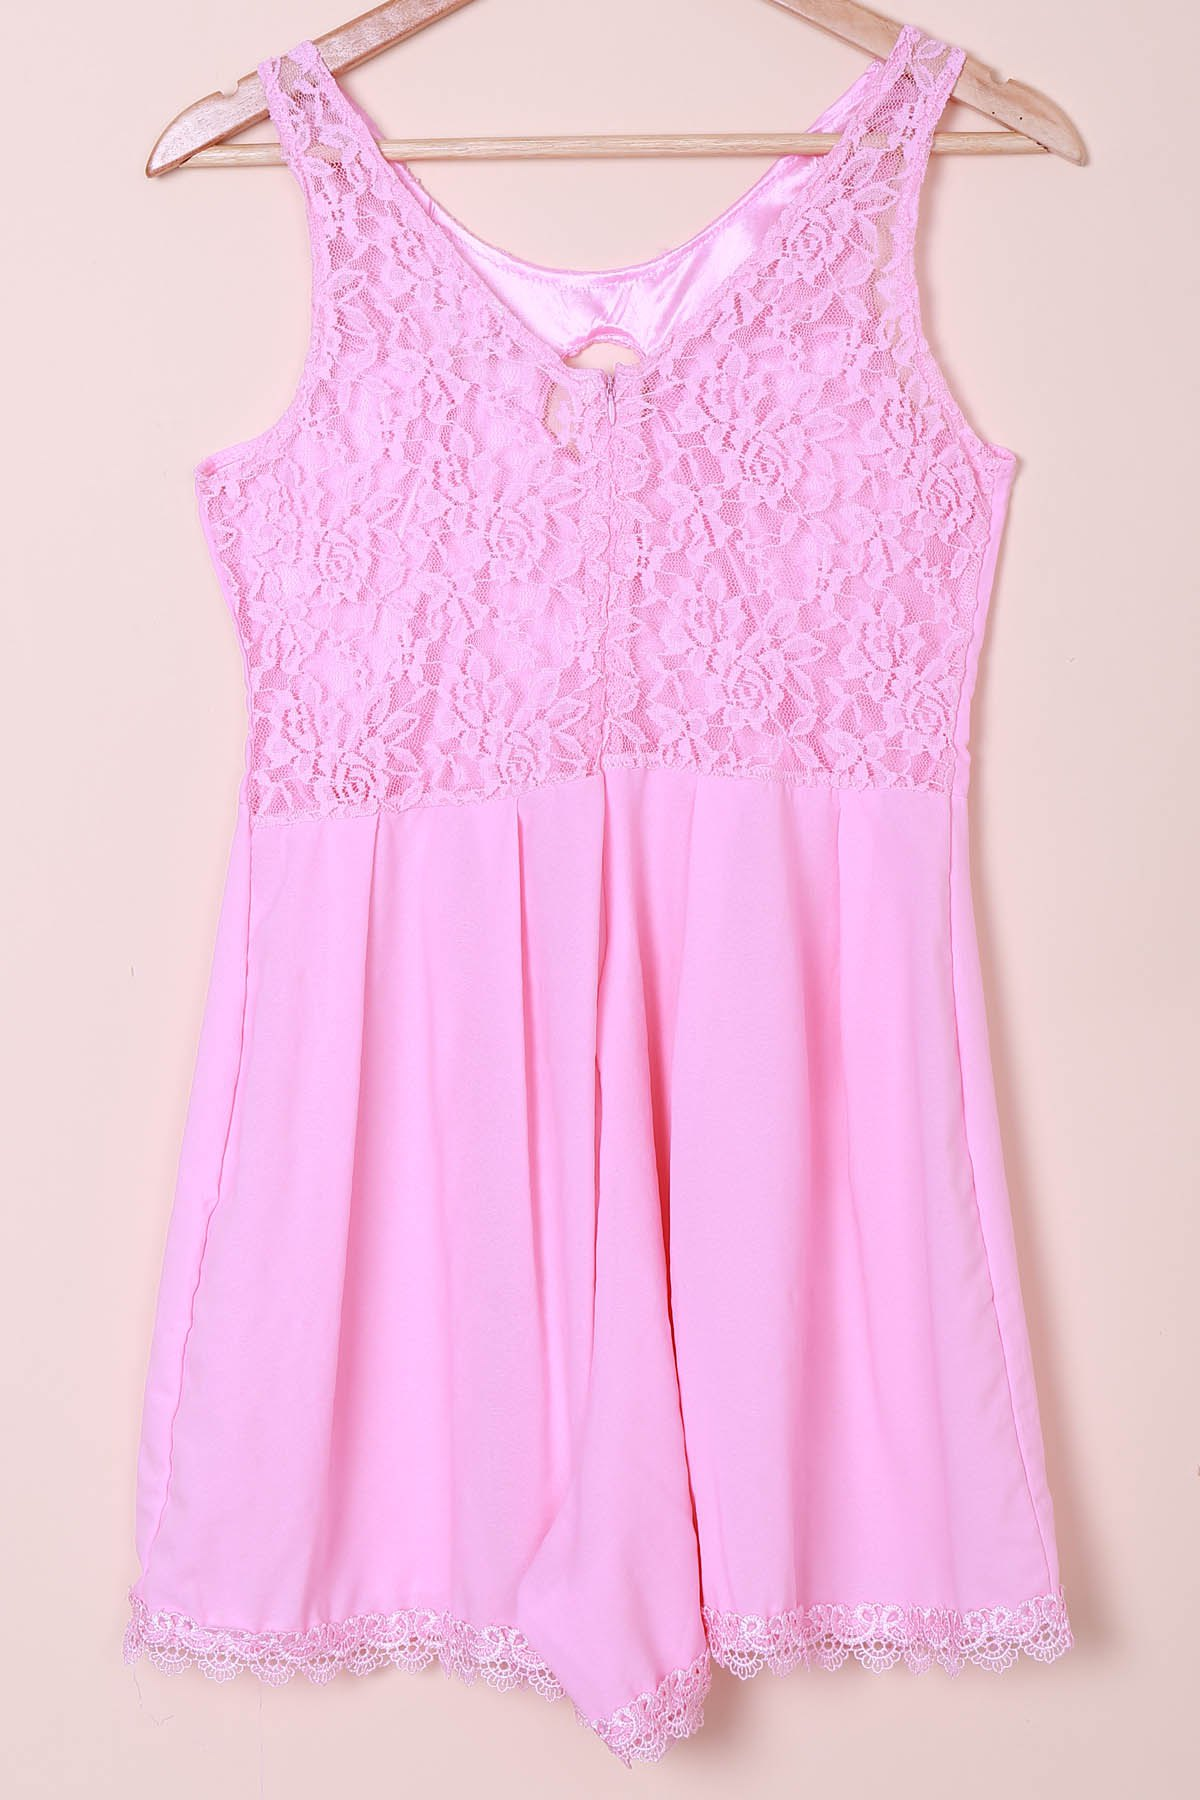 Sexy Scoop Collar Sleeveless Laciness Hollow Out Women's Romper - PINK M